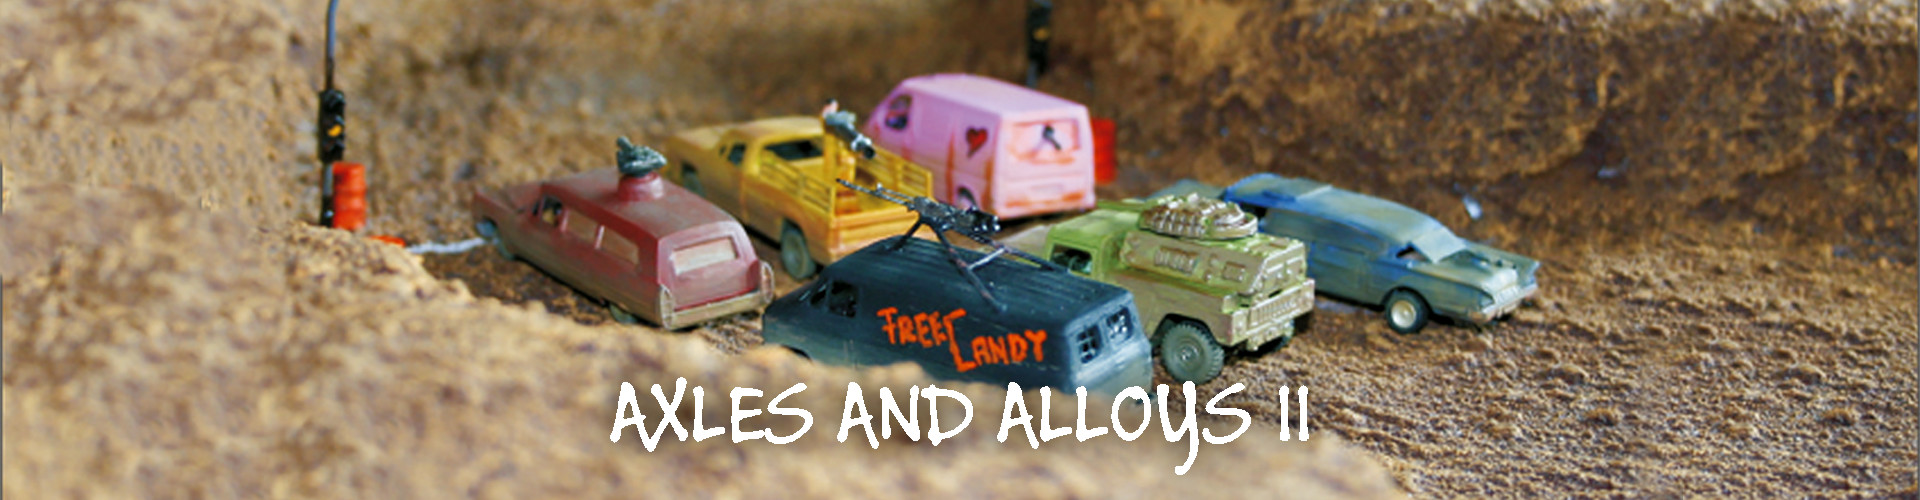 DEMO 04 Axles and Alloys2 - Demospiele: AXLES & ALLOYS 2